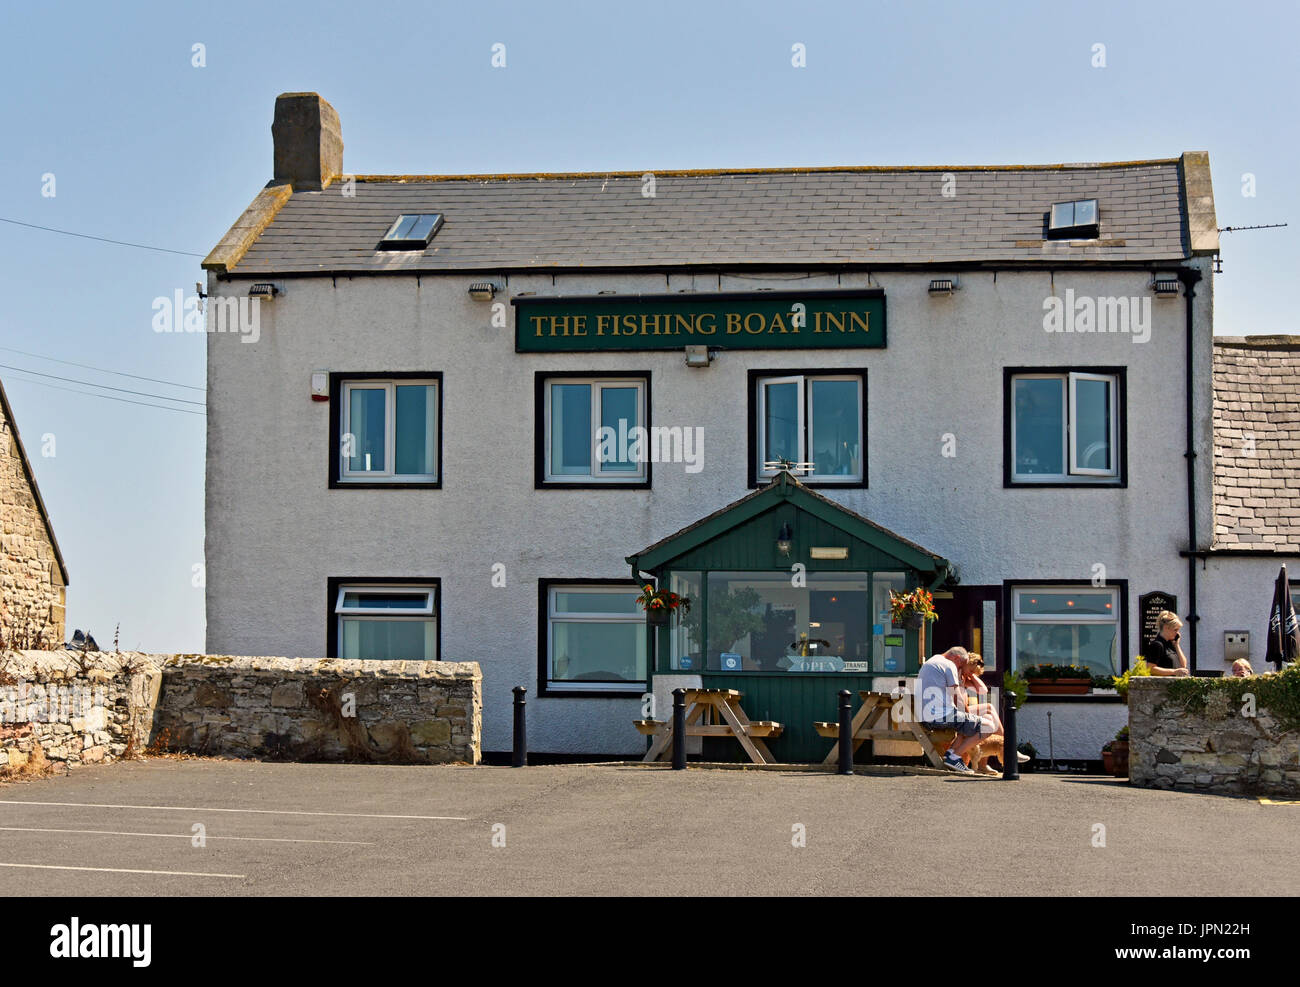 The Fishing Boat Inn. Boulmer, Northumberland, United Kingdom, Europe. - Stock Image